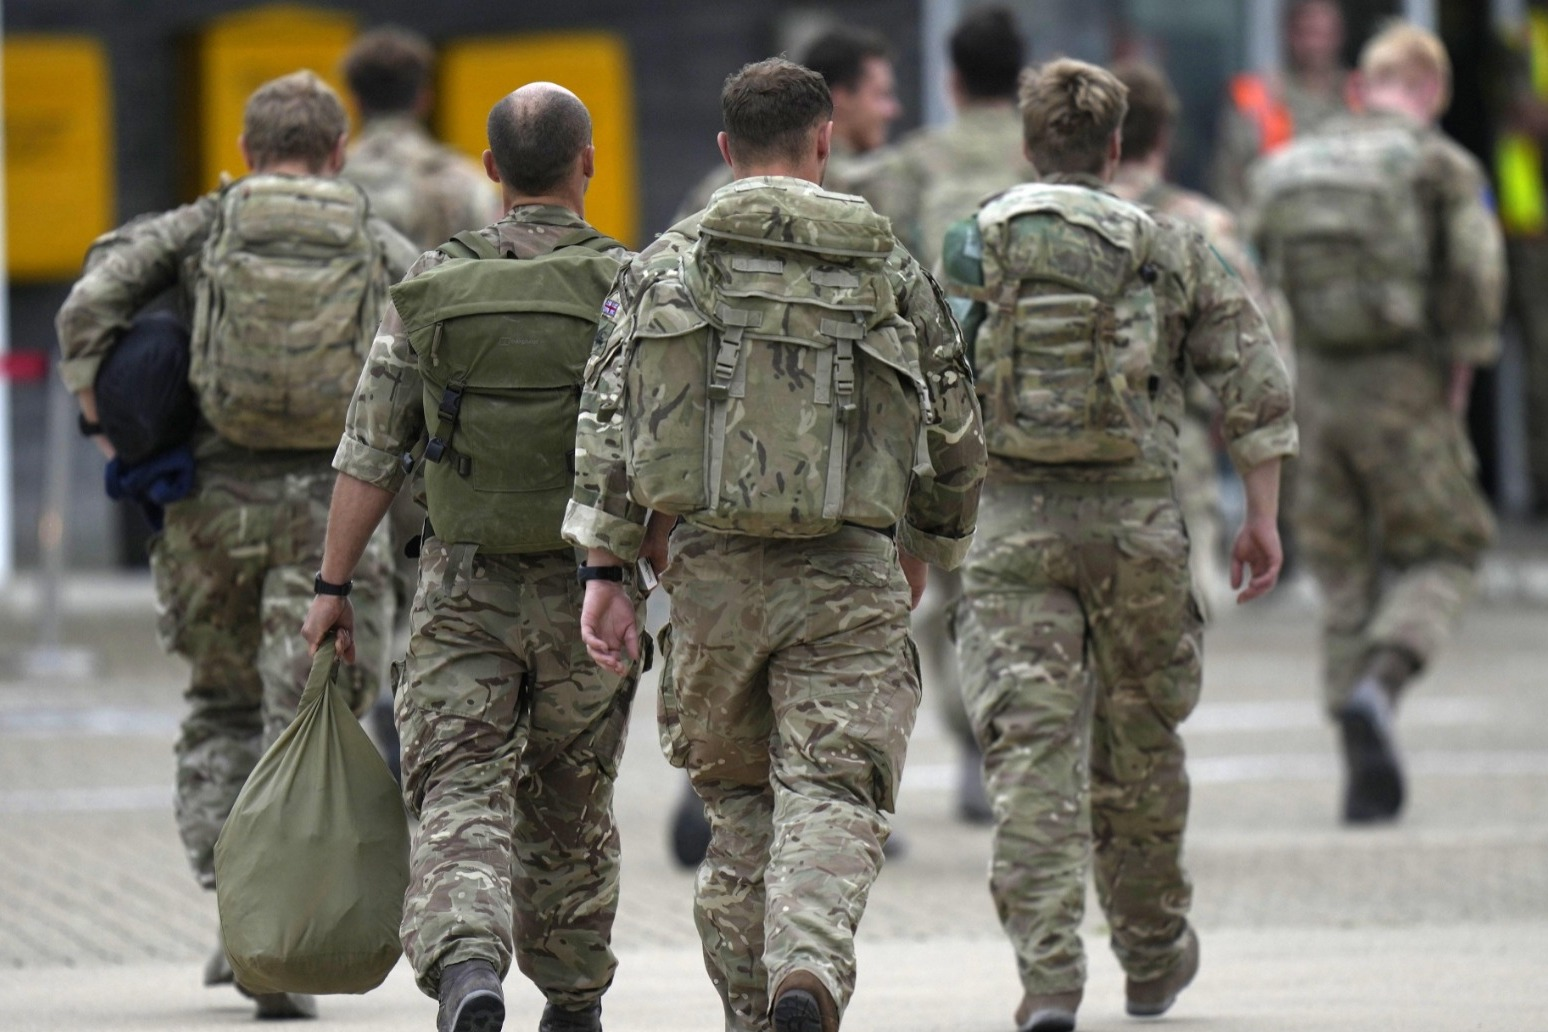 Data breach will force 'left behind' Afghan interpreters to move, MP claims